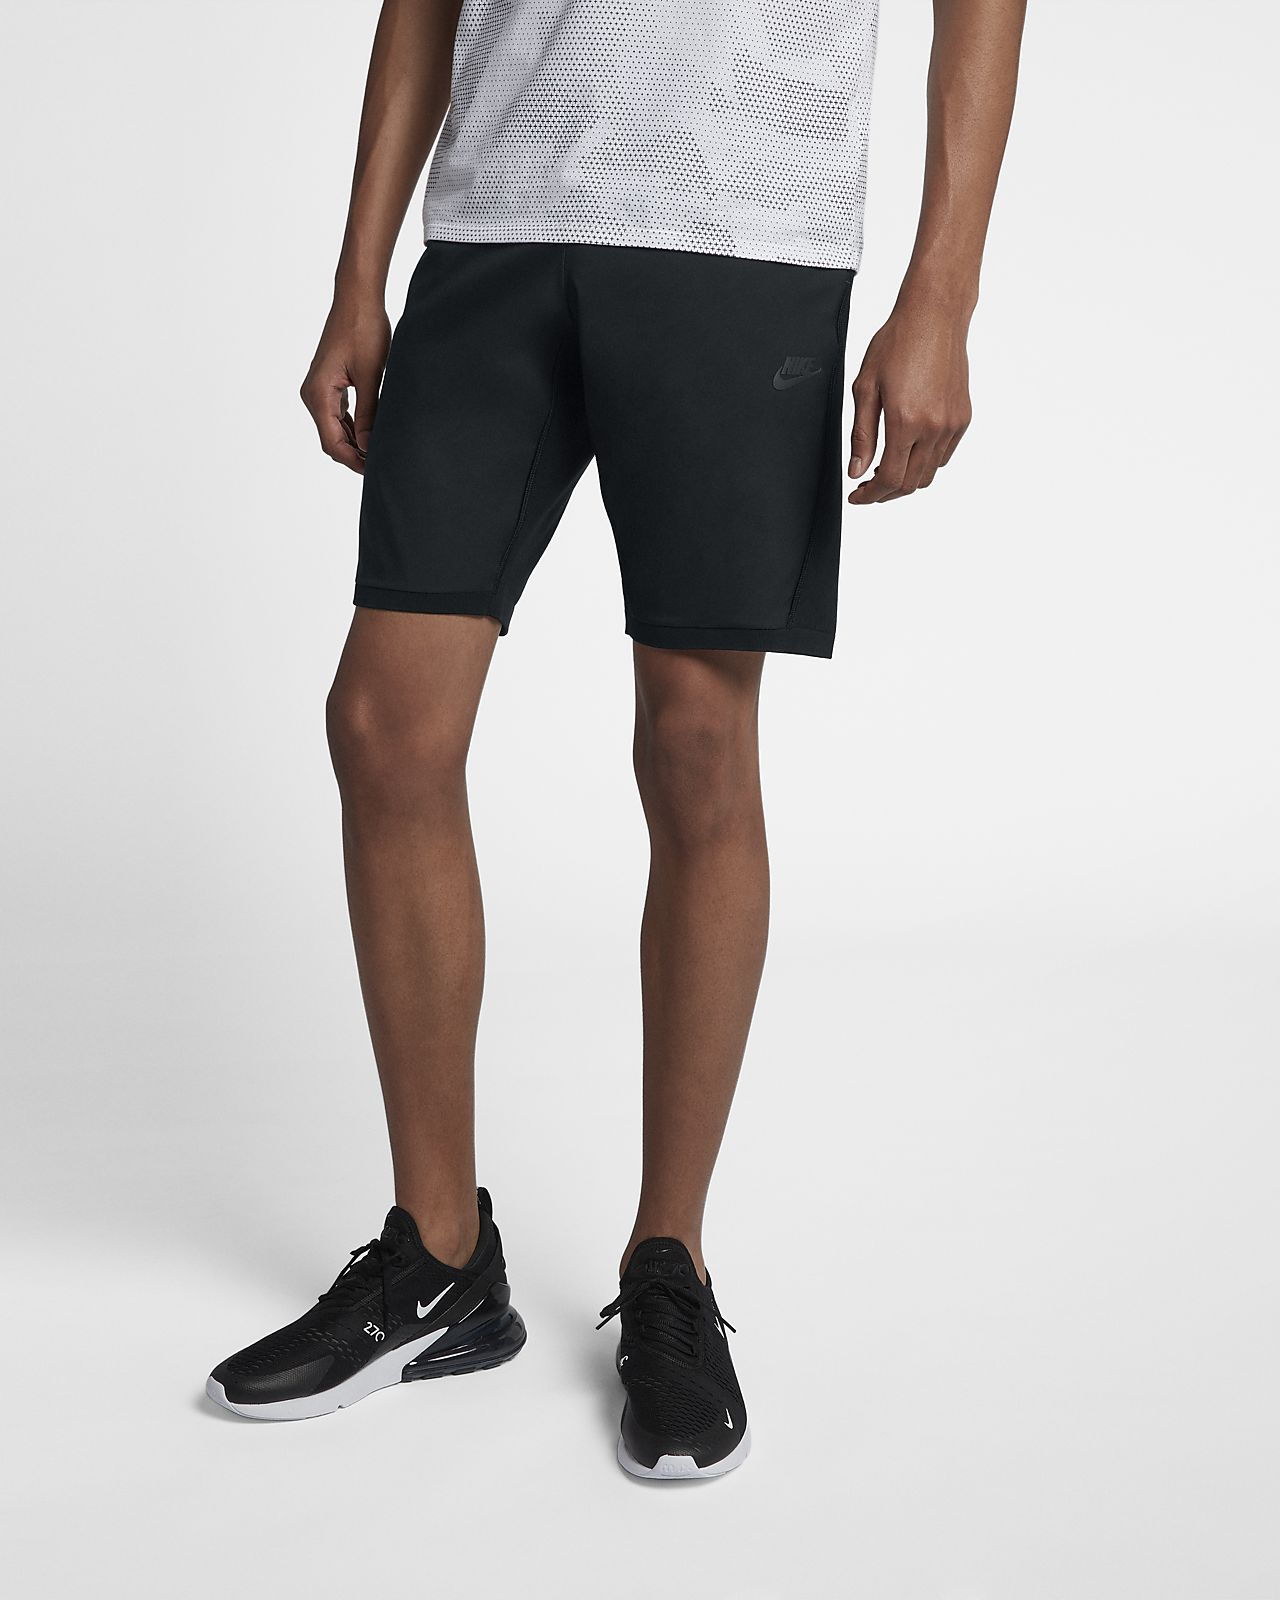 Nike Sportswear Tech Knit Men's Shorts White/Black